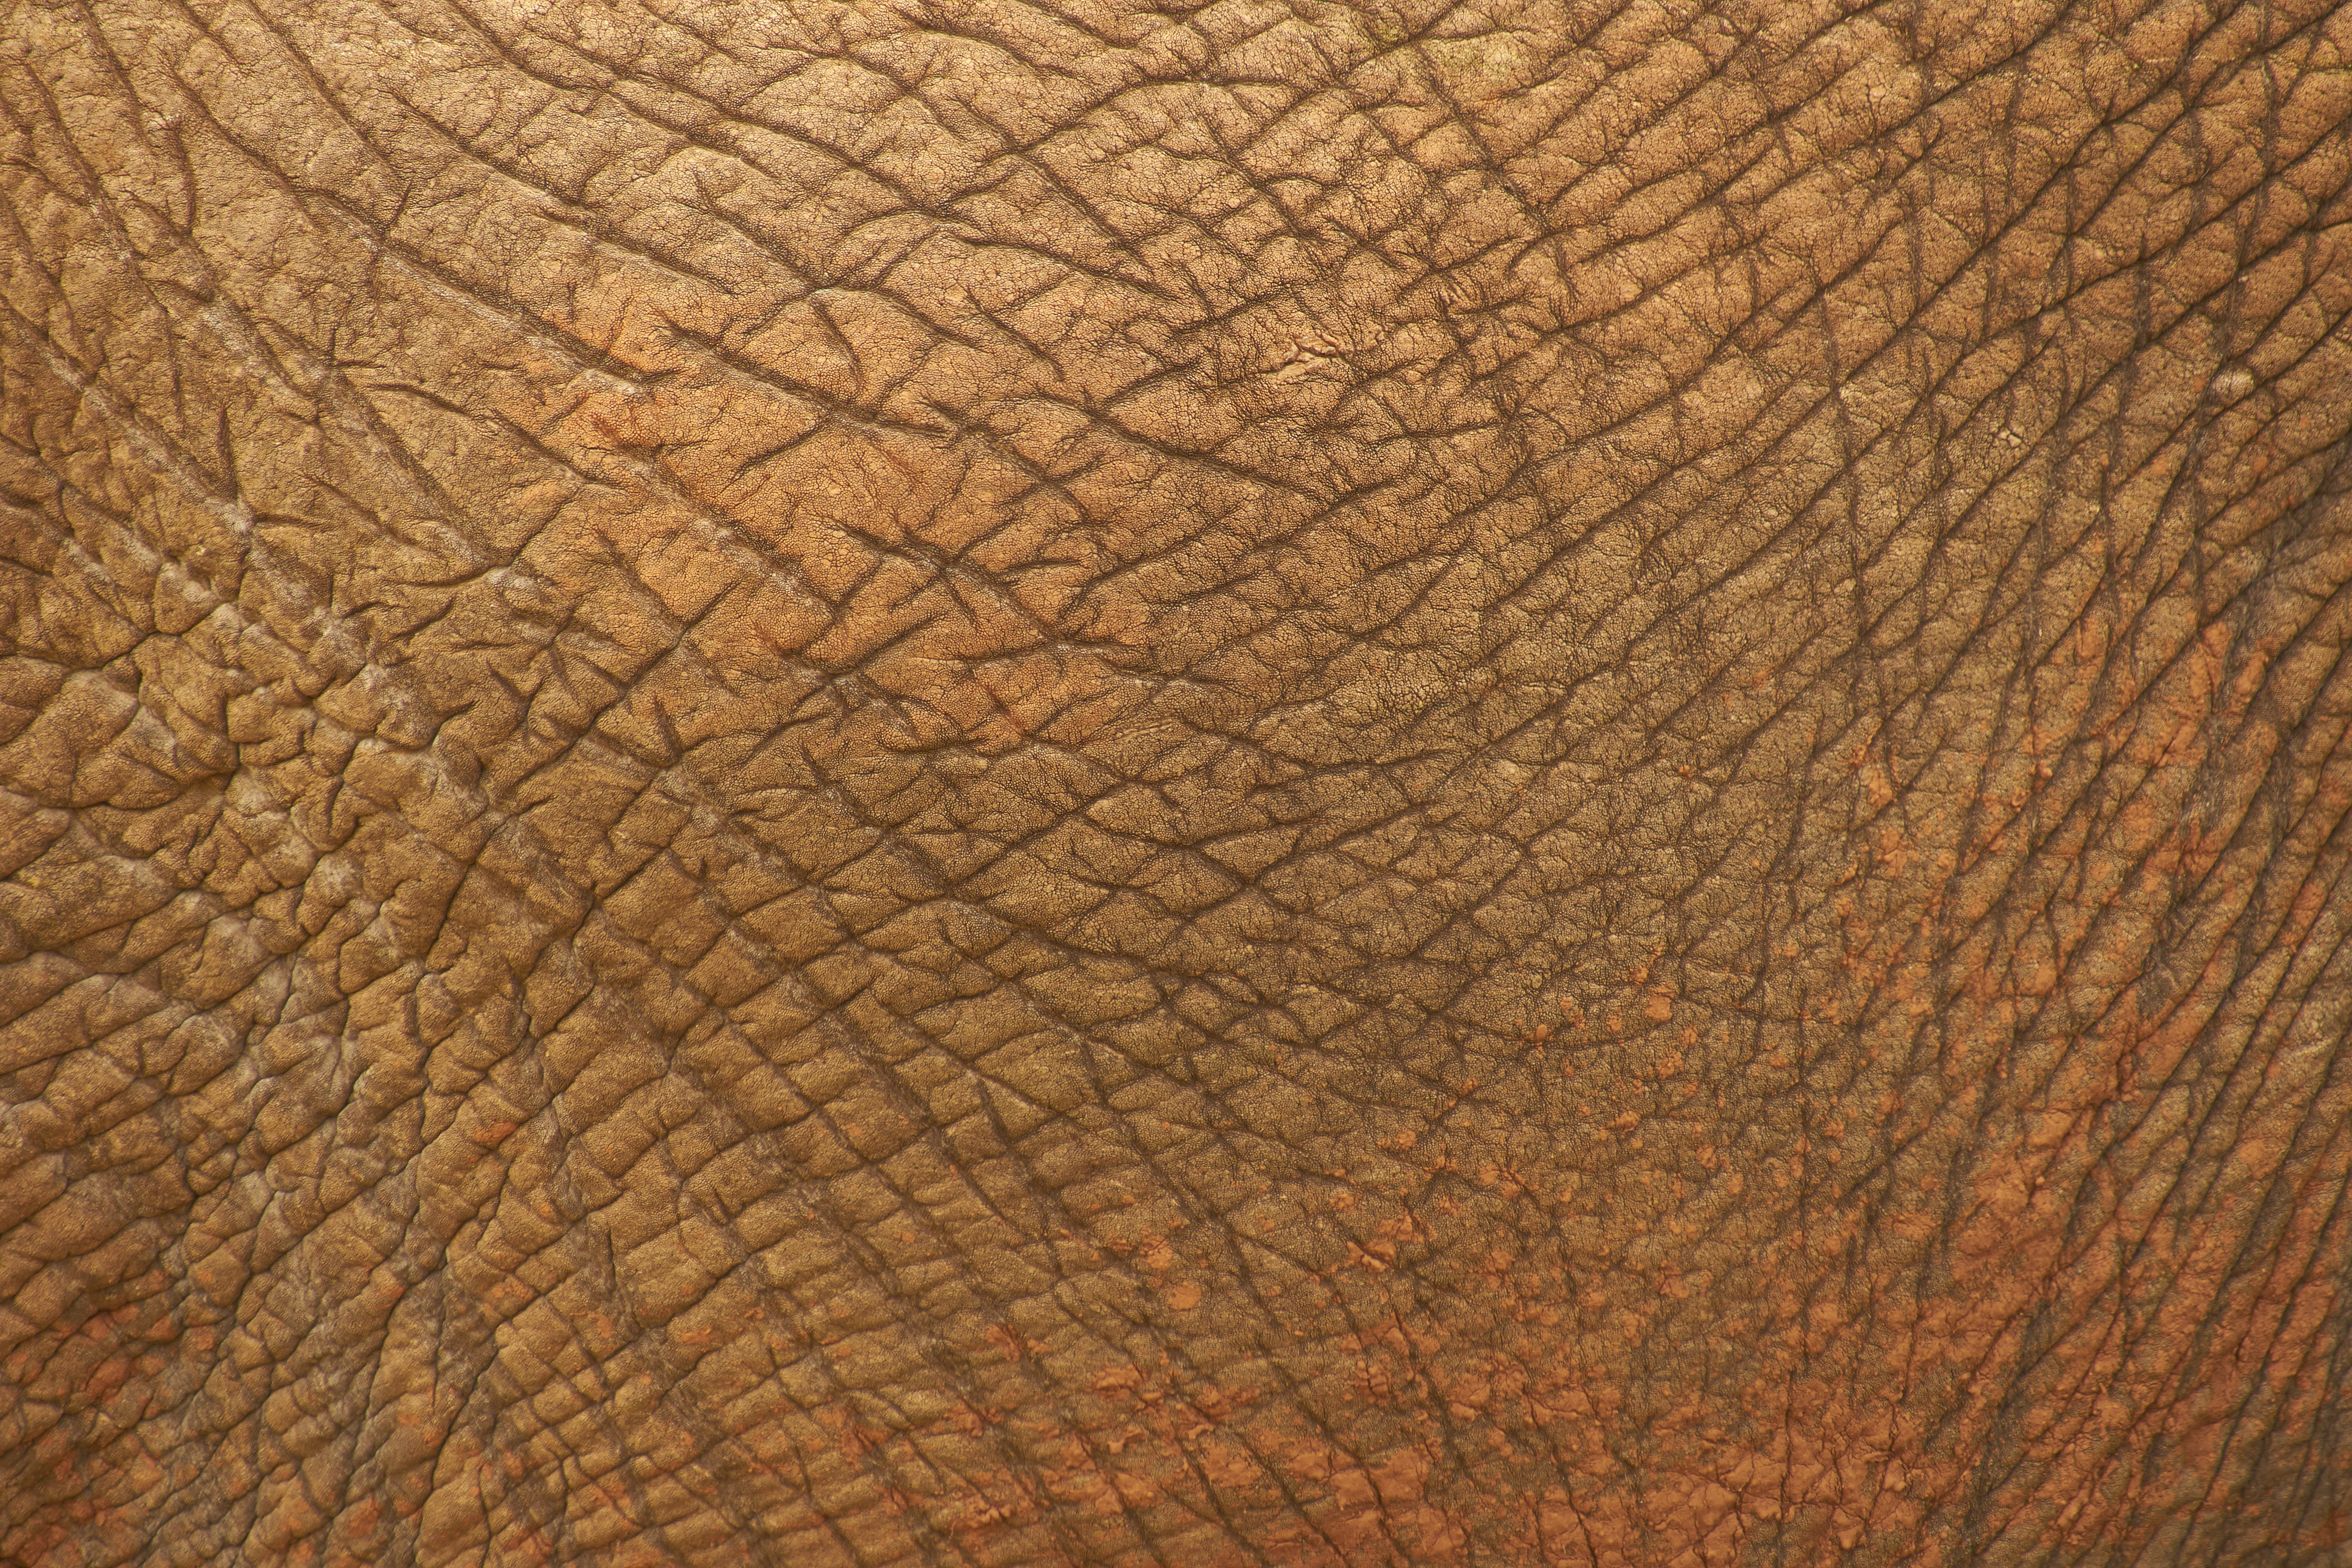 102908 download wallpaper Textures, Texture, Leather, Skin, Folds, Pleating, Animal screensavers and pictures for free